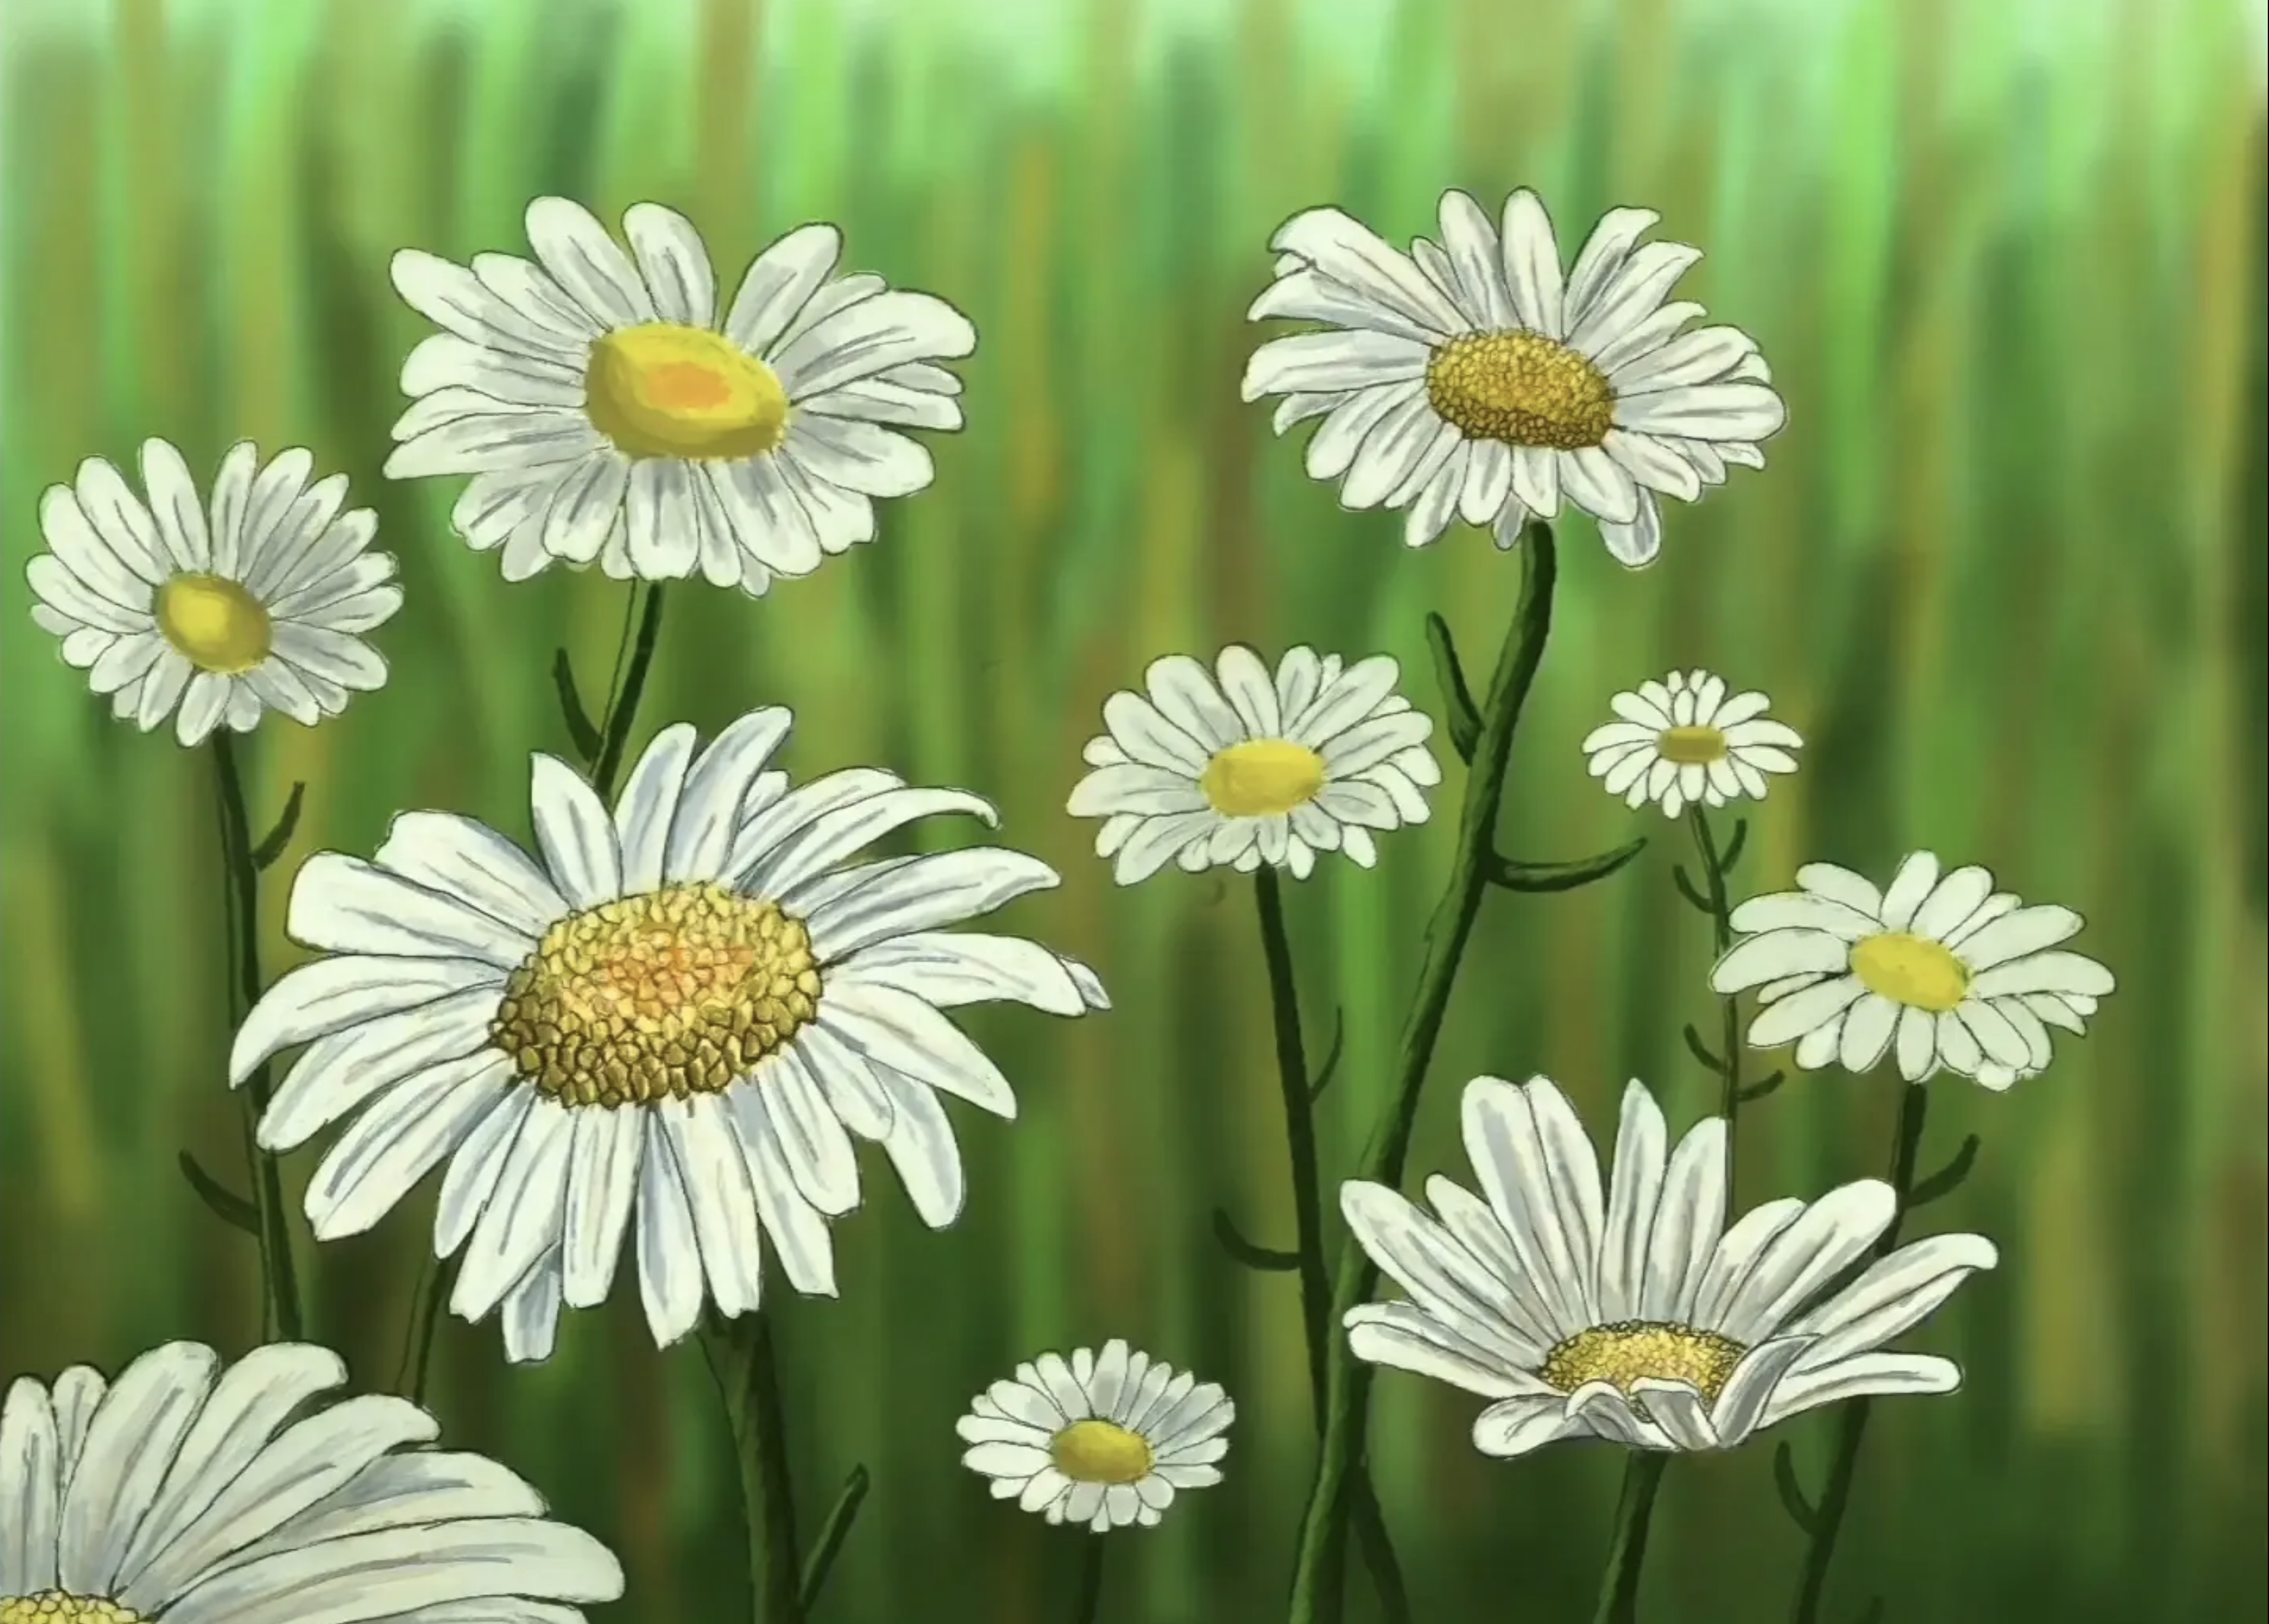 Daisies by Cheryl Lin Fielding and her students at the University of California, Los Angeles